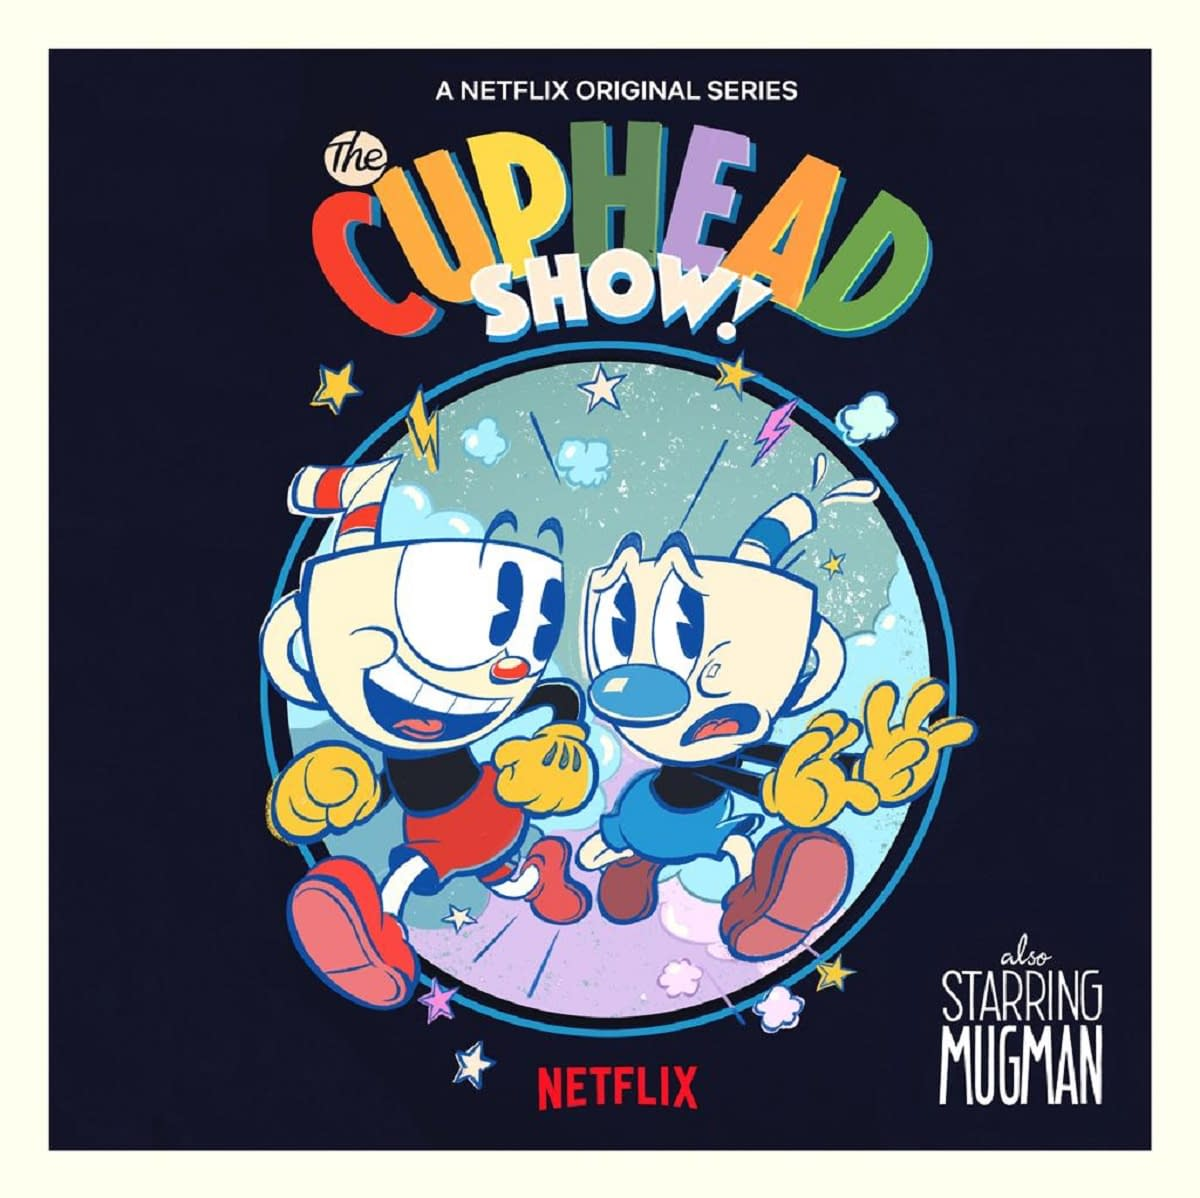 """The Cuphead Show!"": Cuphead & Friends Set for All-Ages Animated Netflix Series"